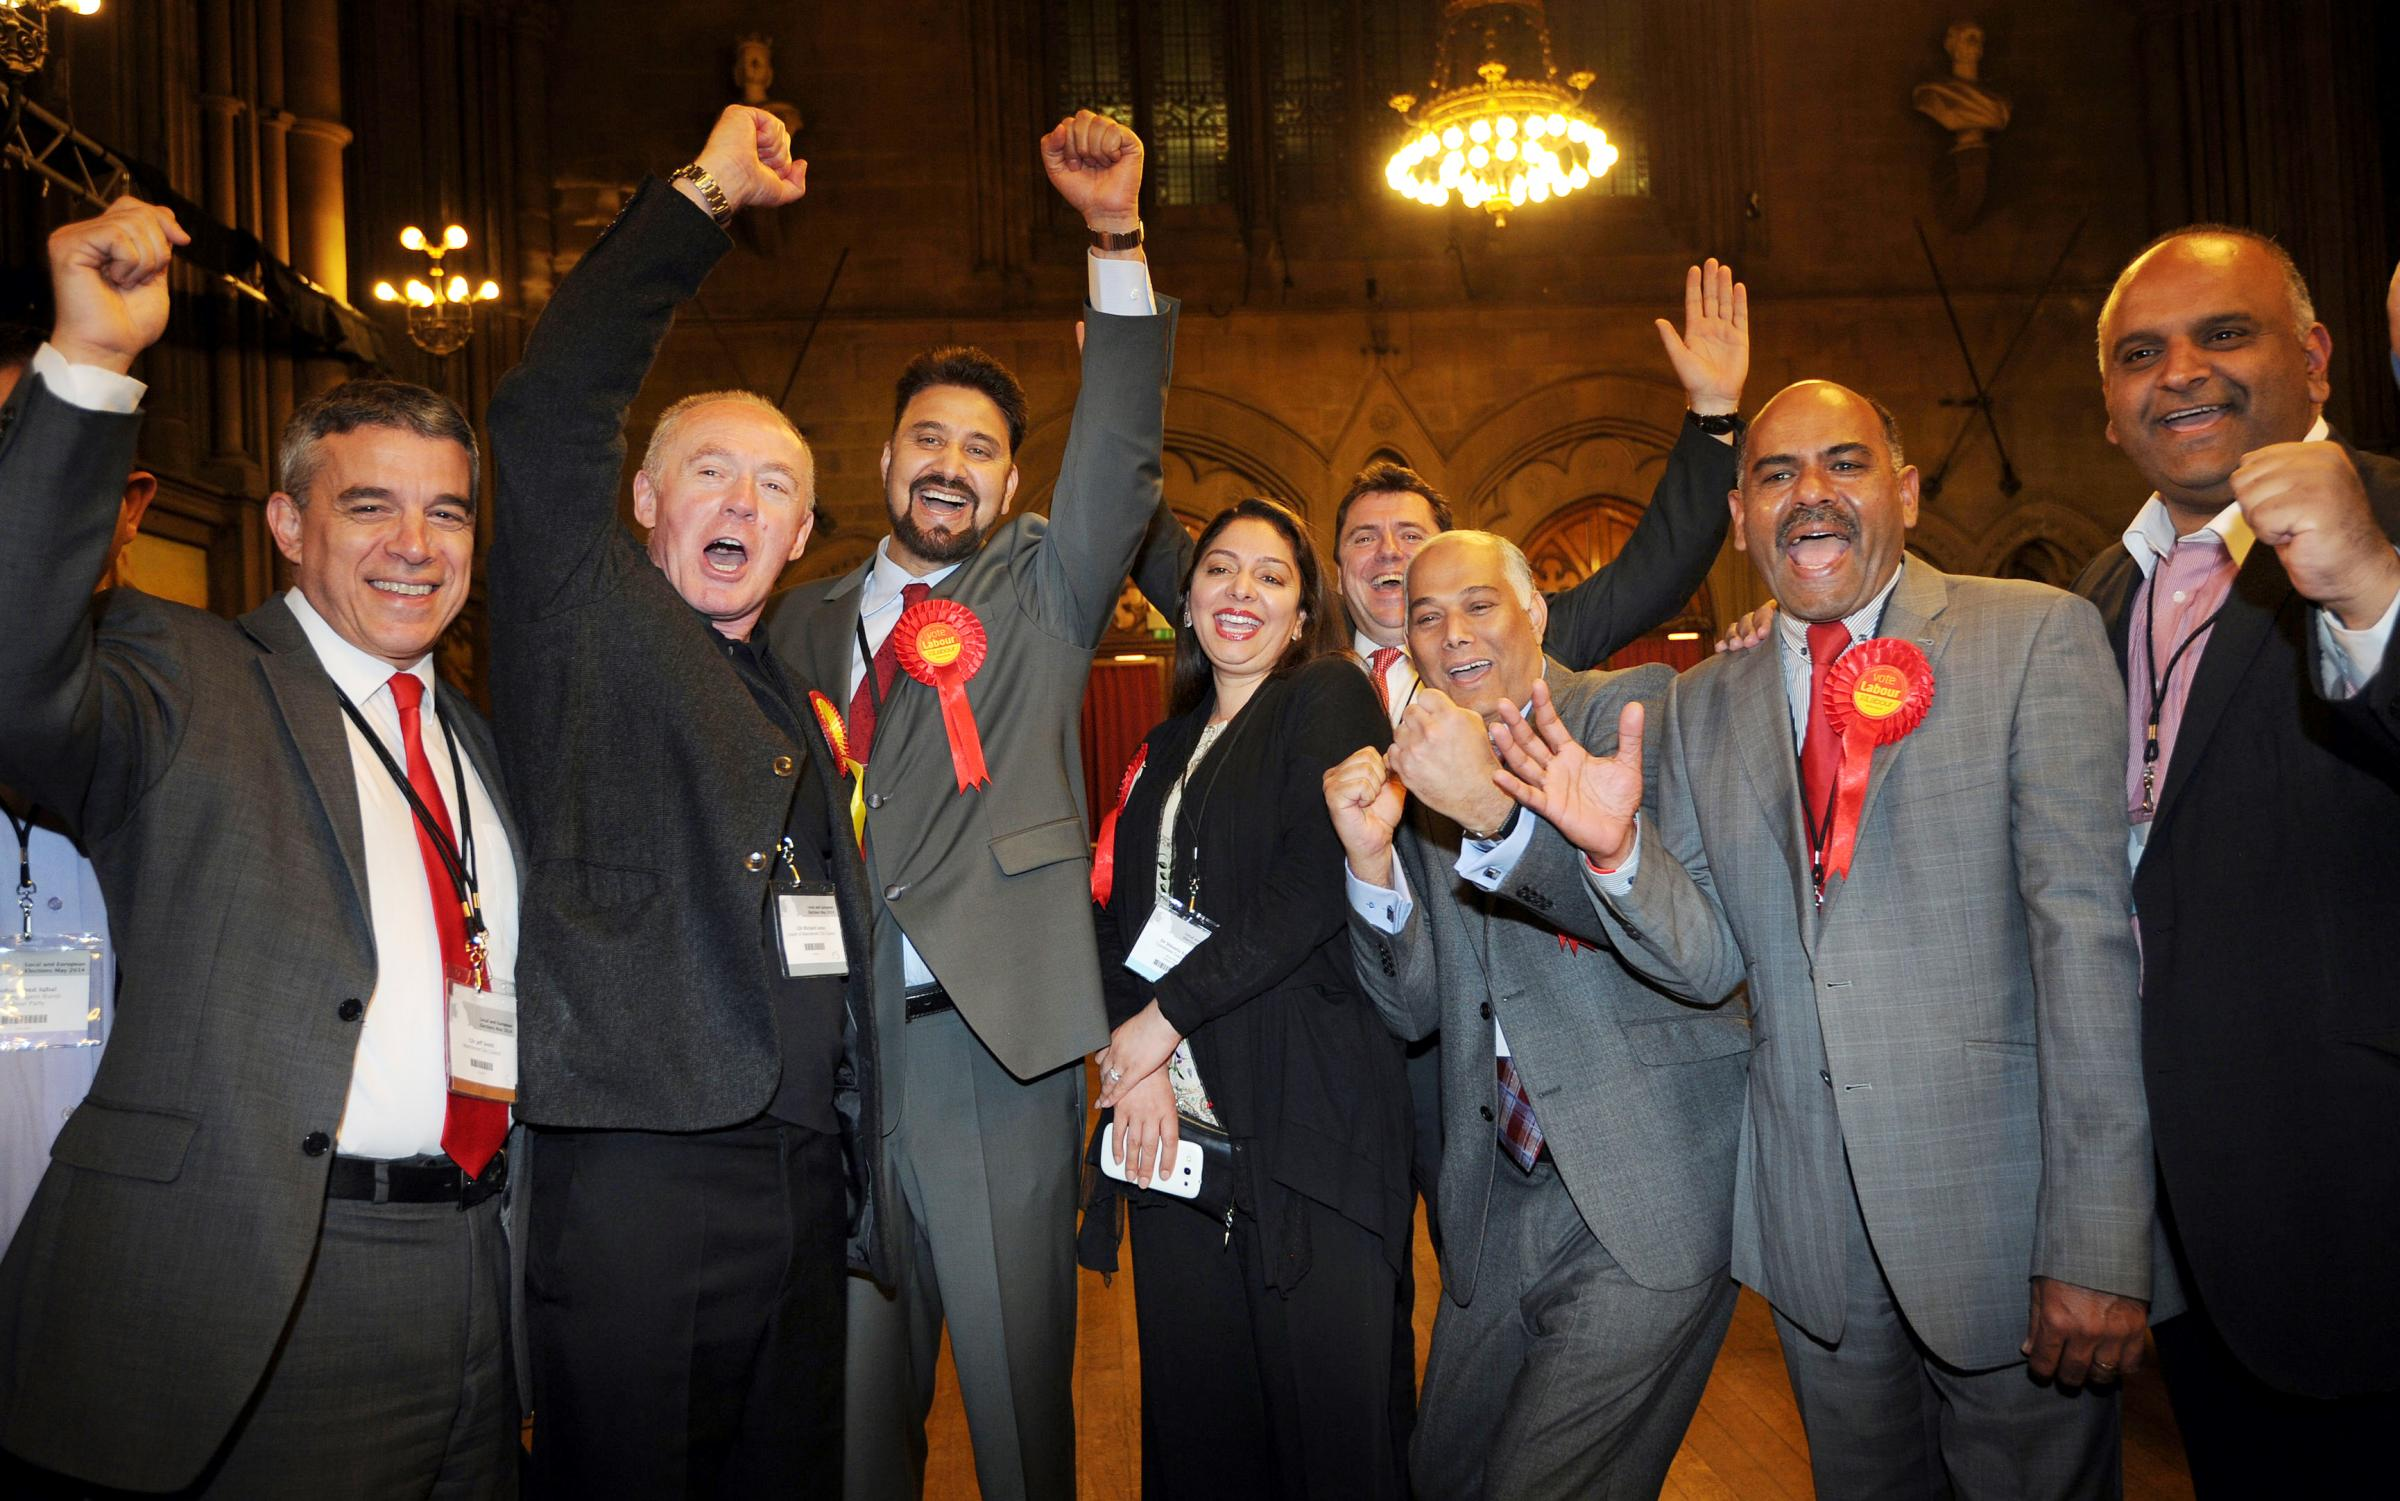 Labour storms to victory in Bolton's European elections - but UKIP is close behind